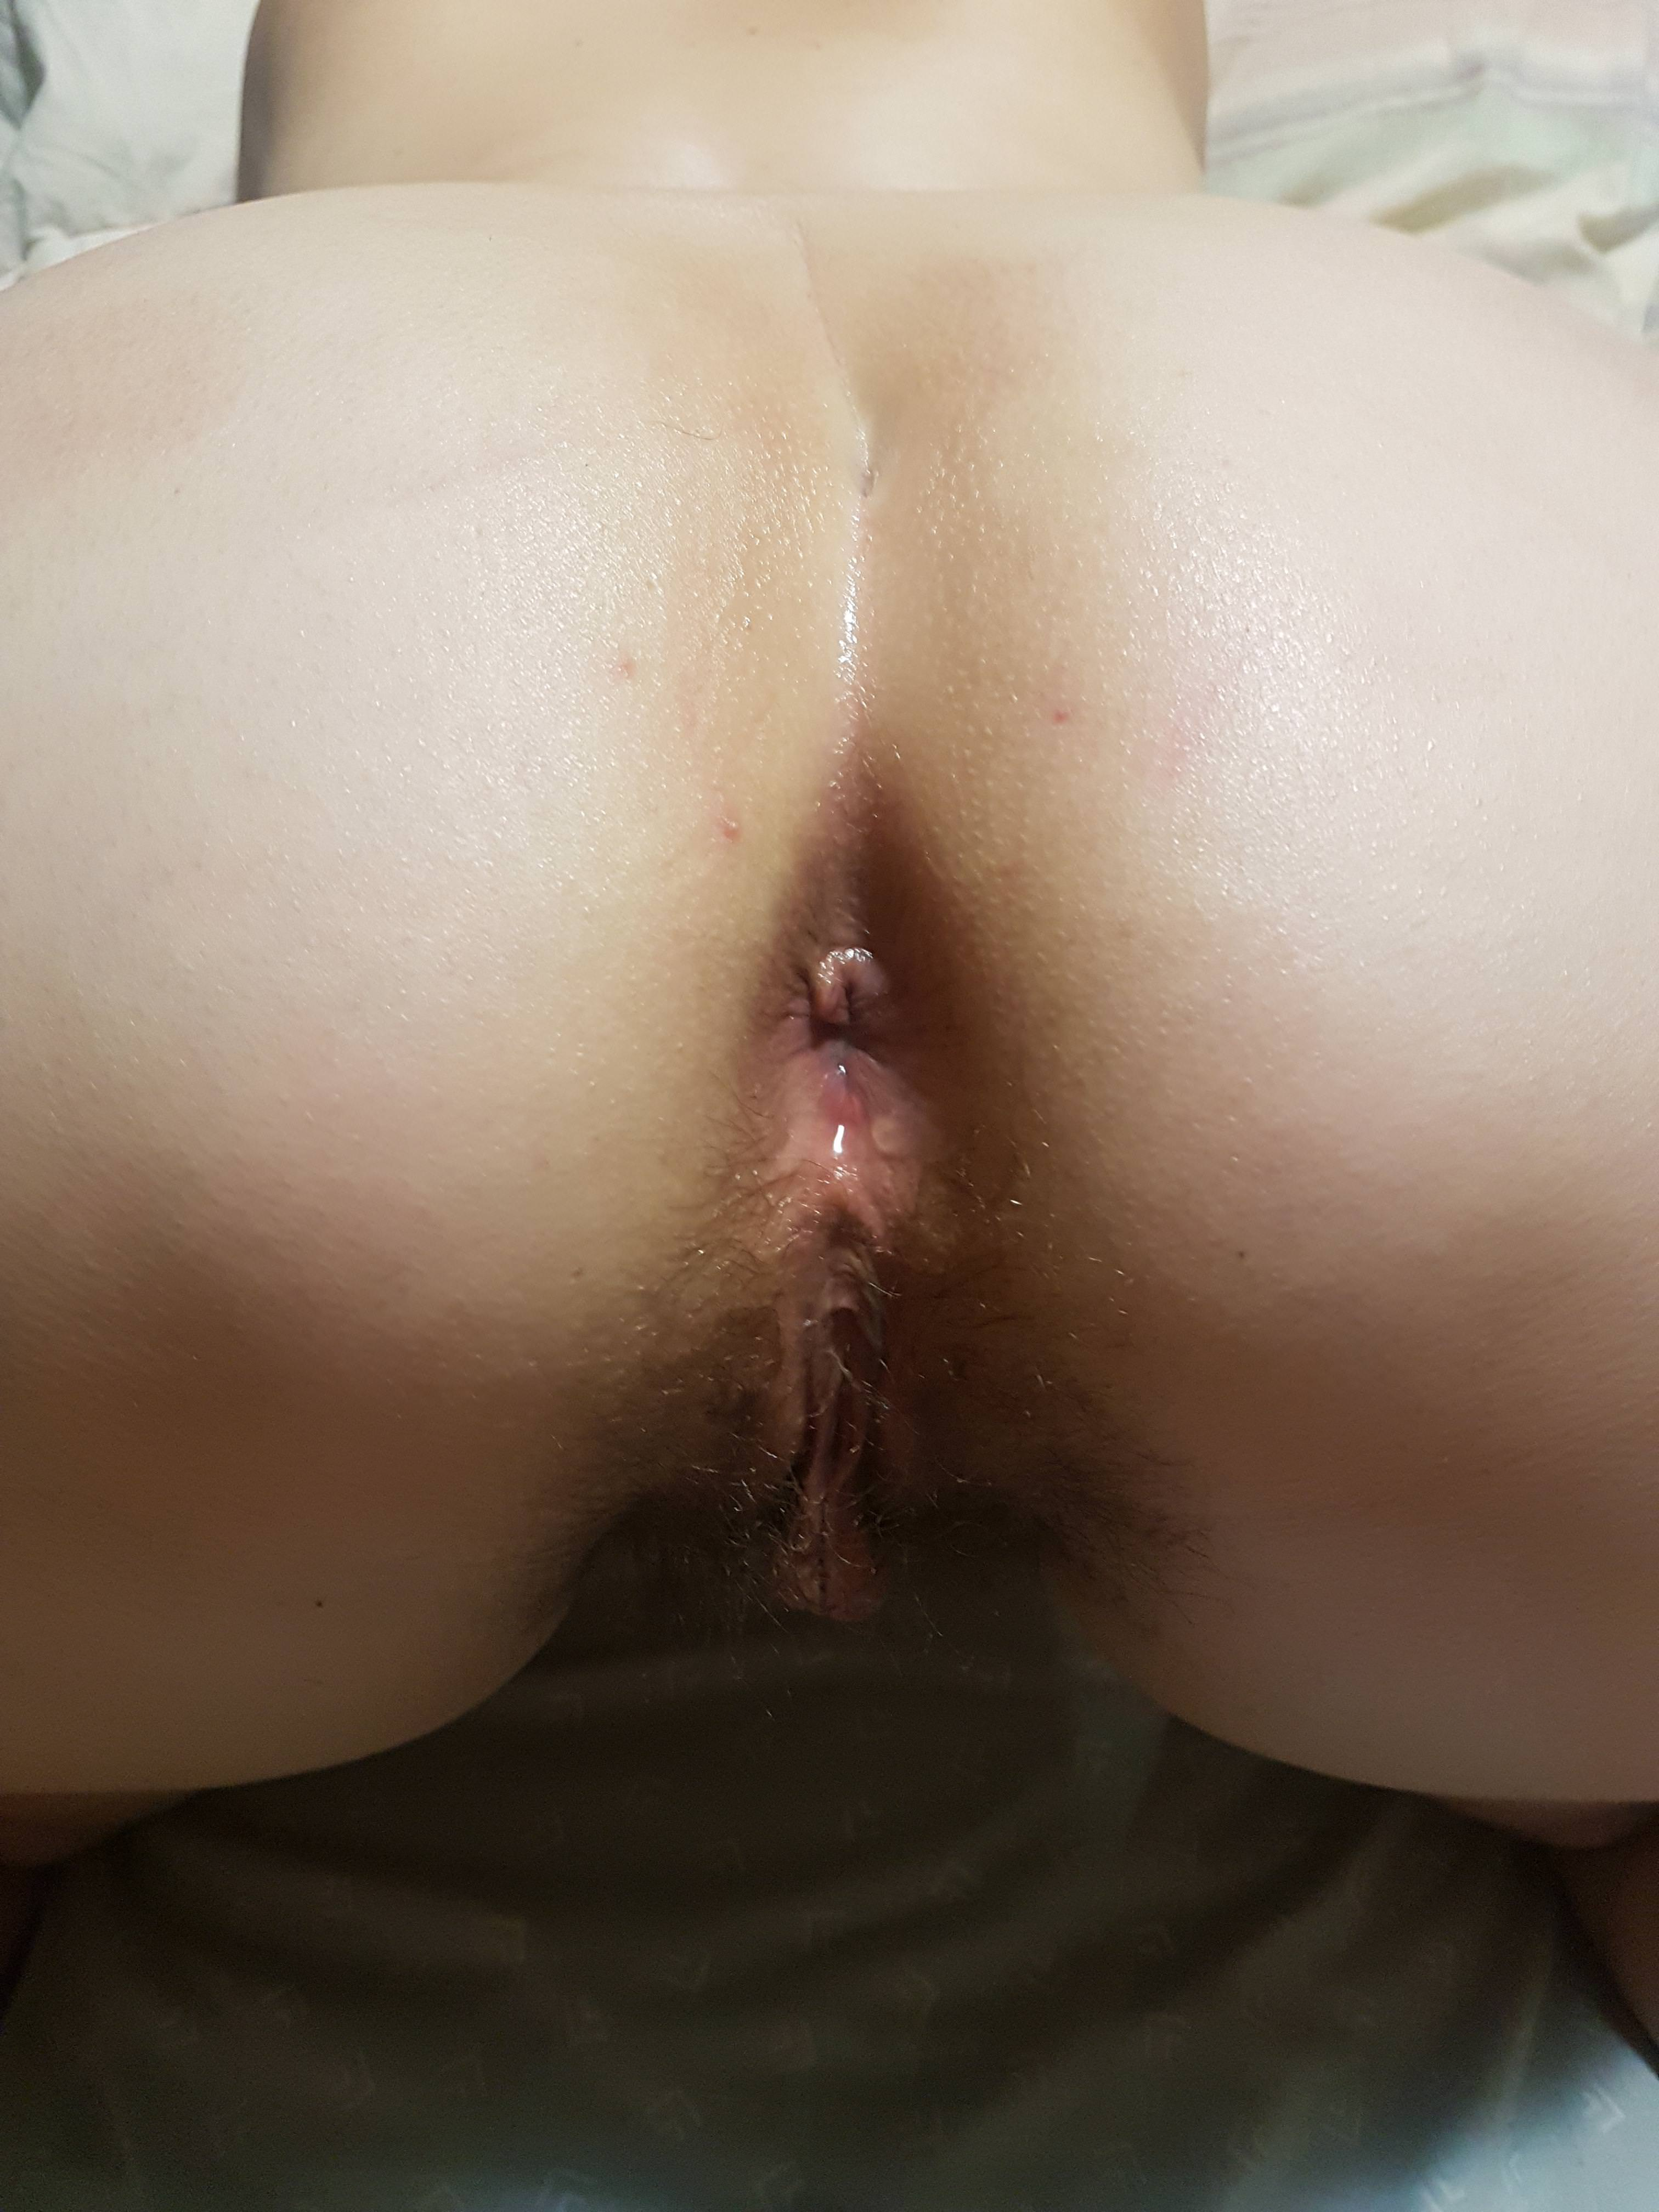 Something also by girlfriend fucked ass my you